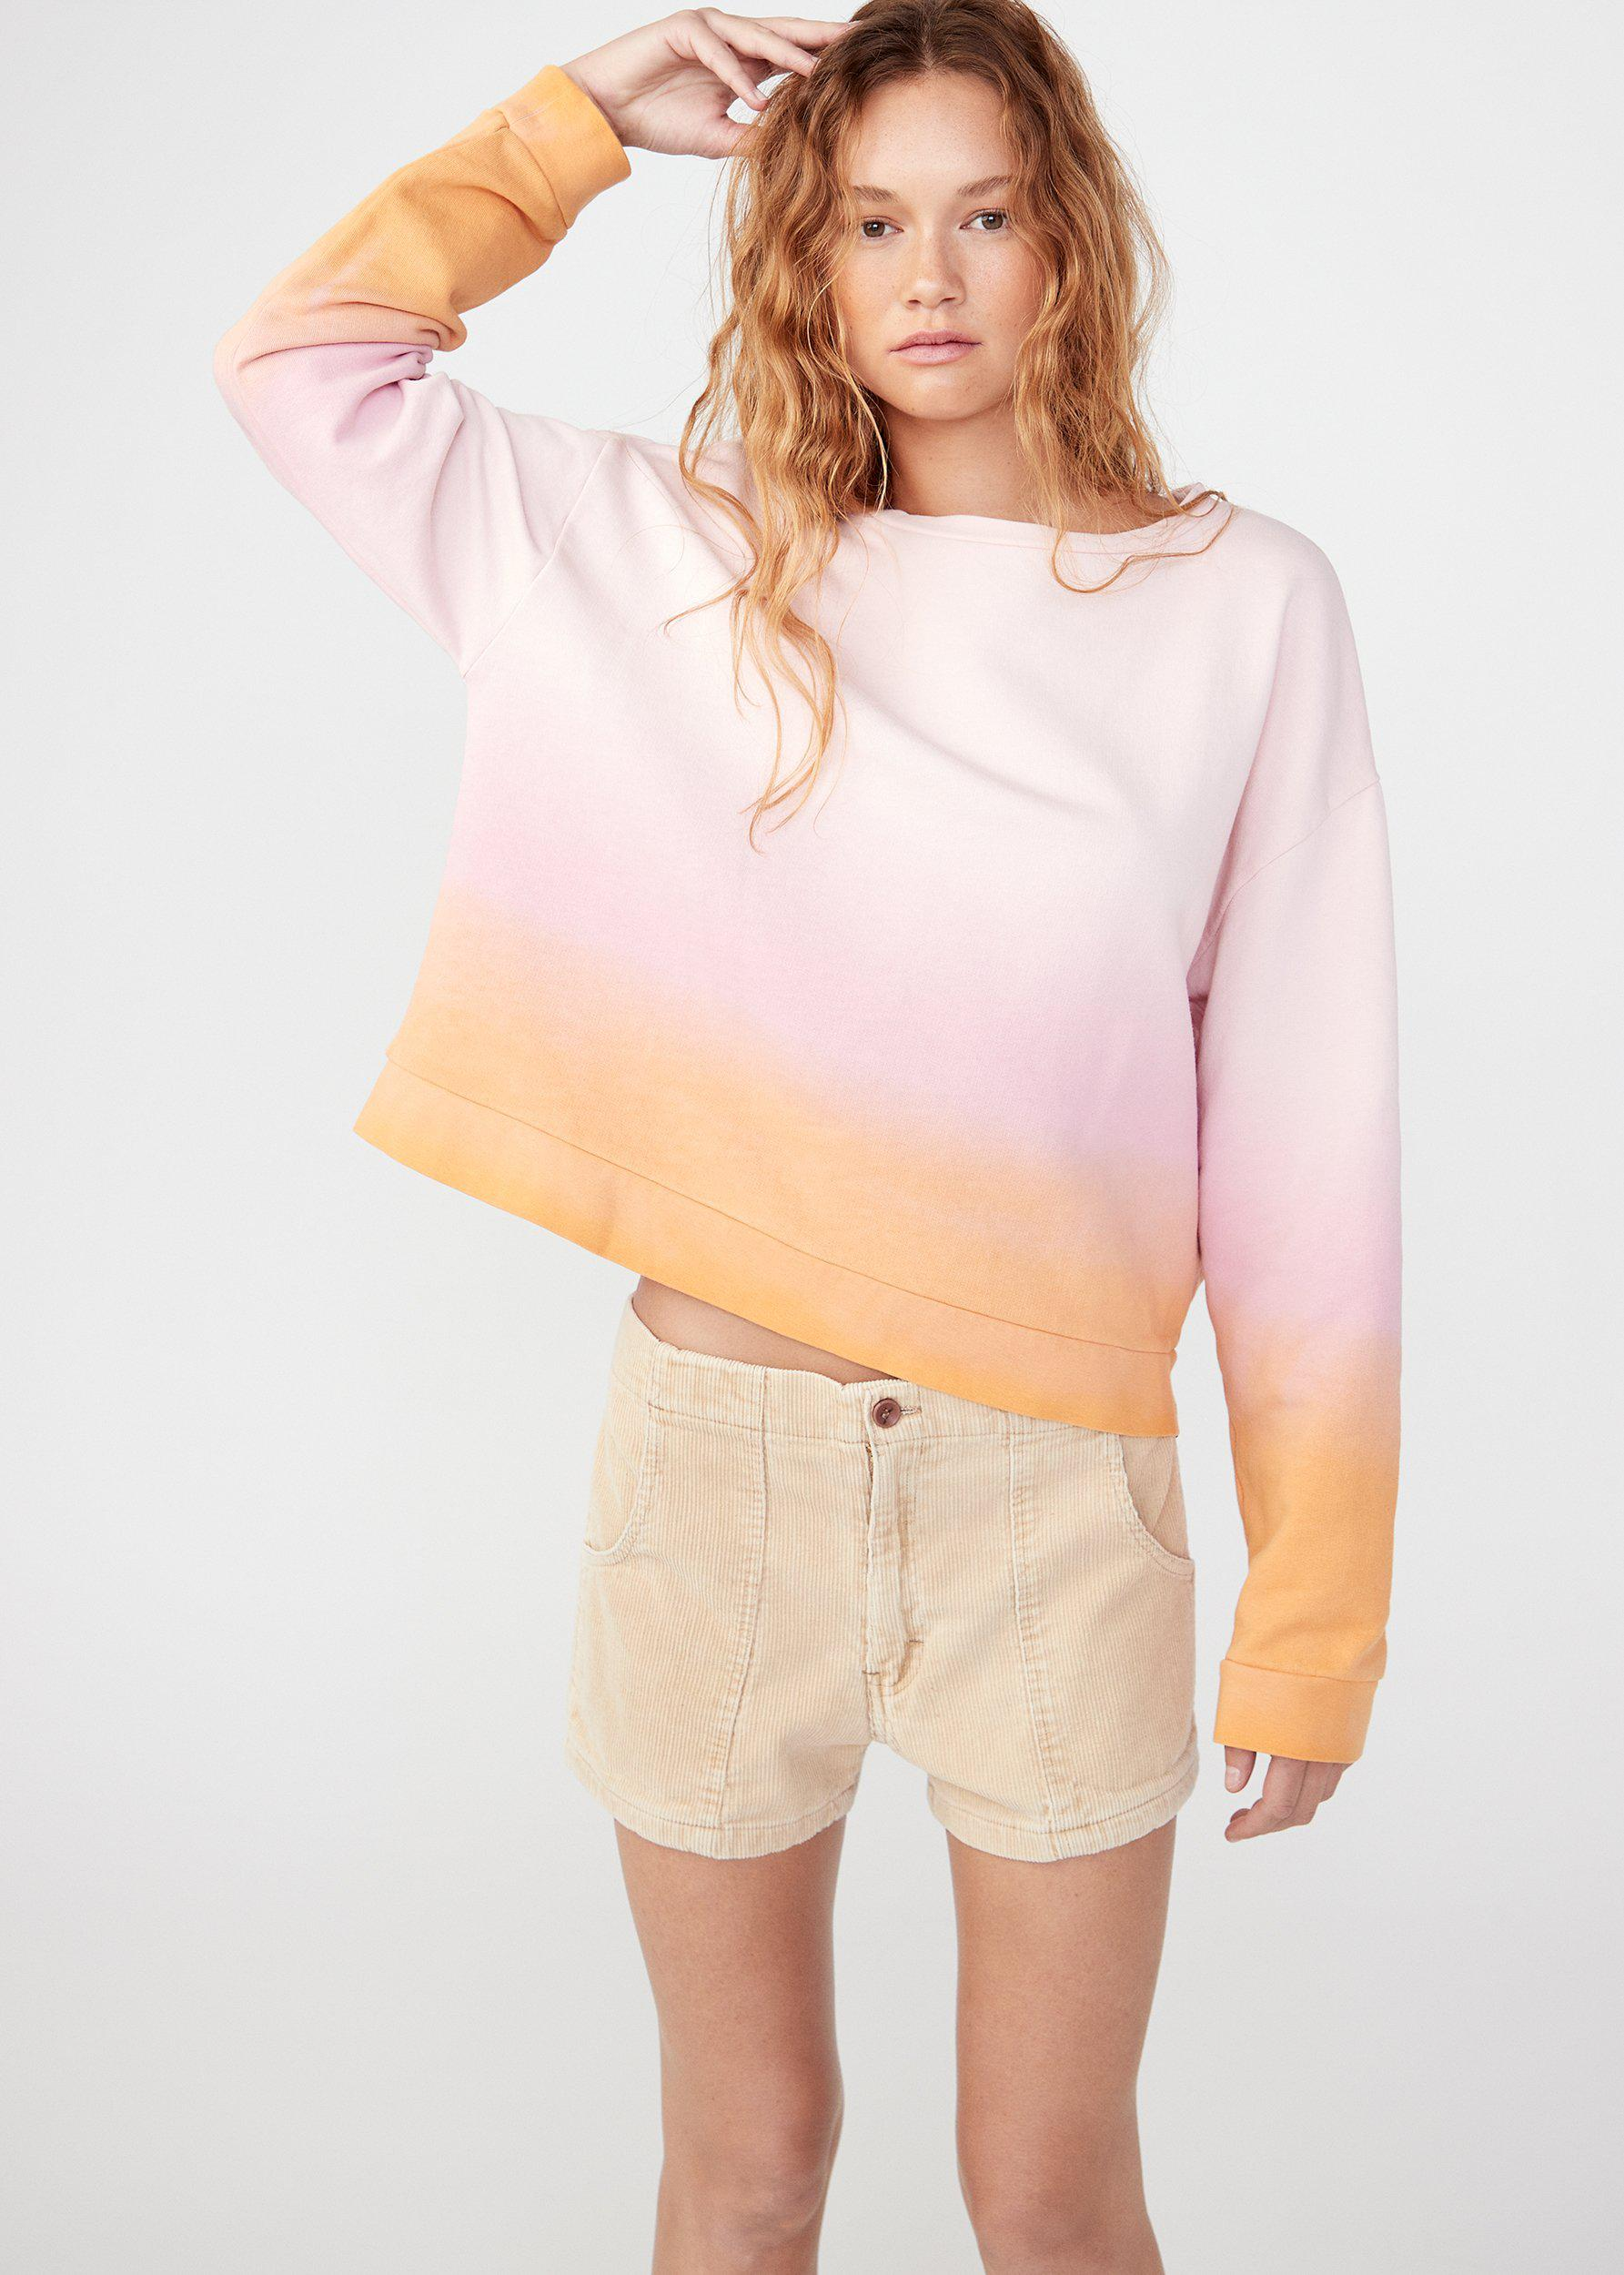 The Organic Ombre Summer - Pink/Gold 1